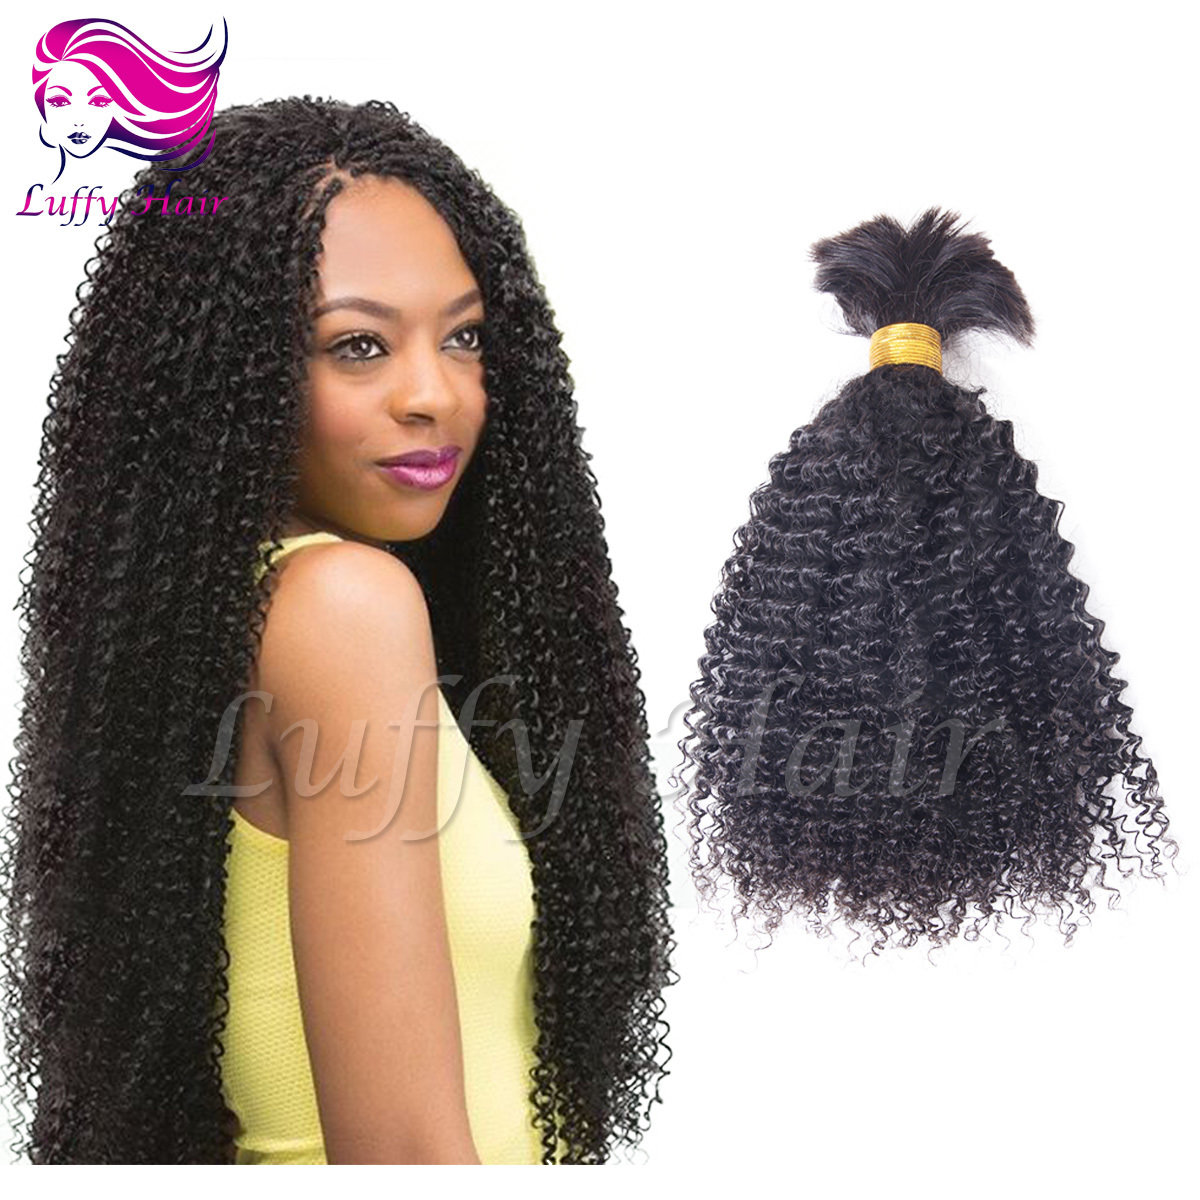 8A Virgin Human Hair Afro Braiding Hair Bulk - KBL002